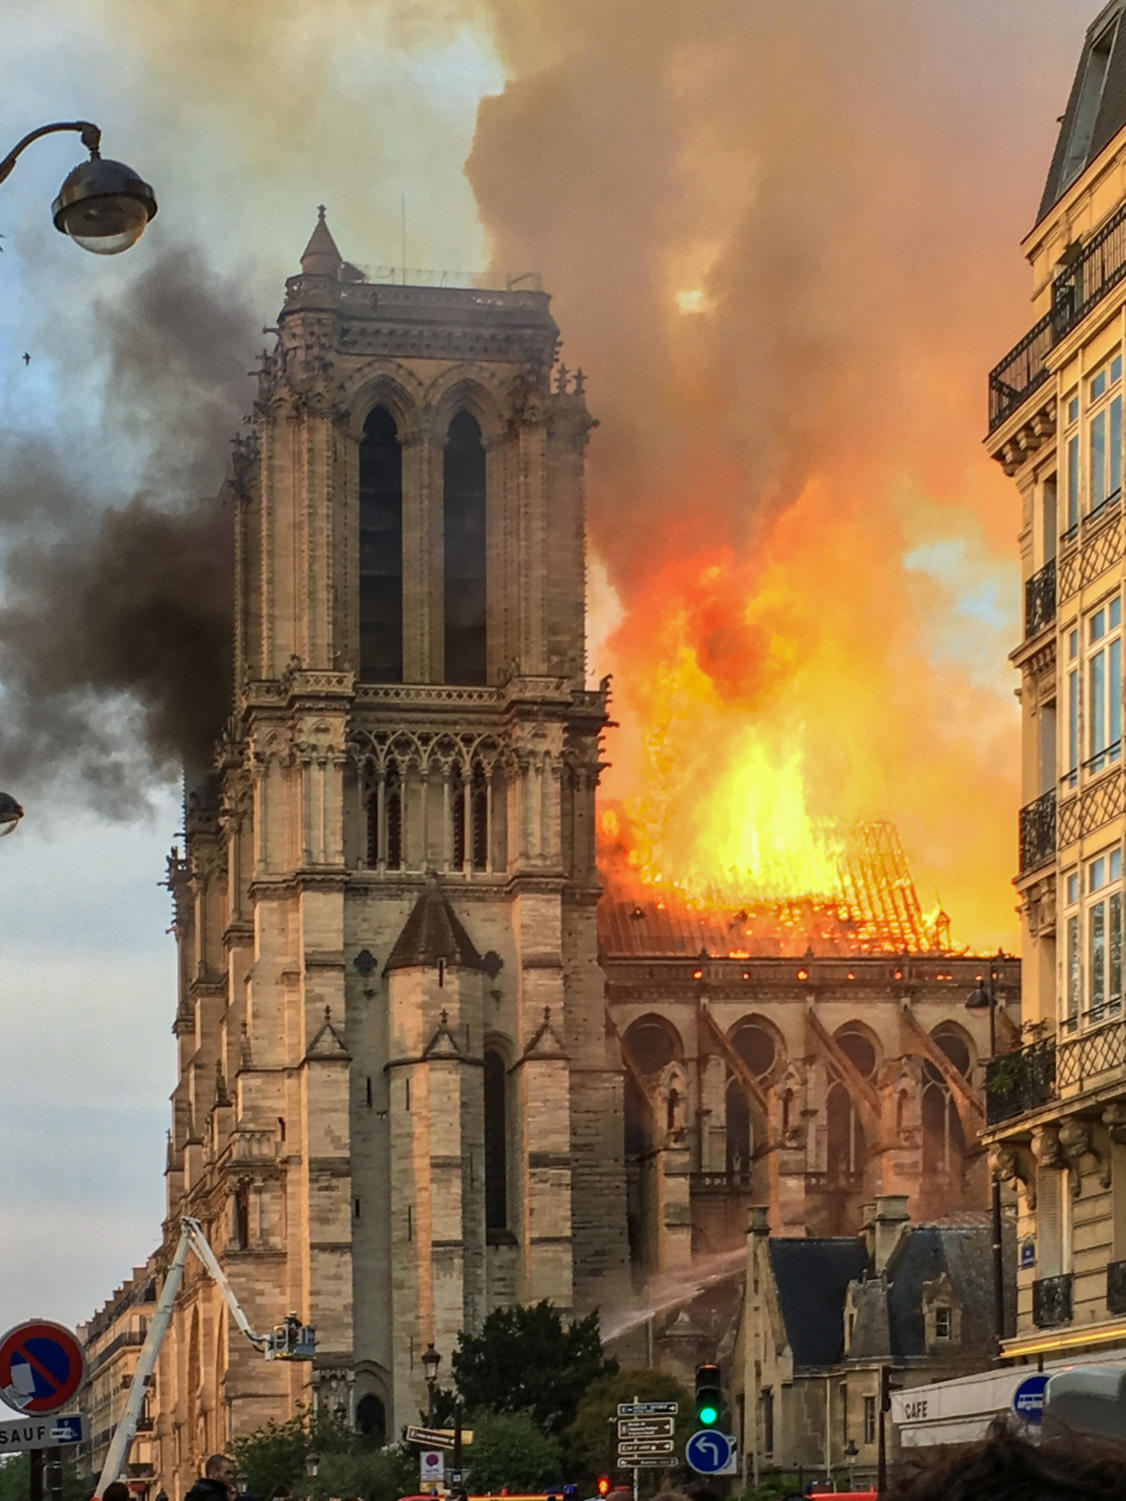 After a fire, that raged for at least 12 hours, occurred at the Notre Dame cathedral on April 15.